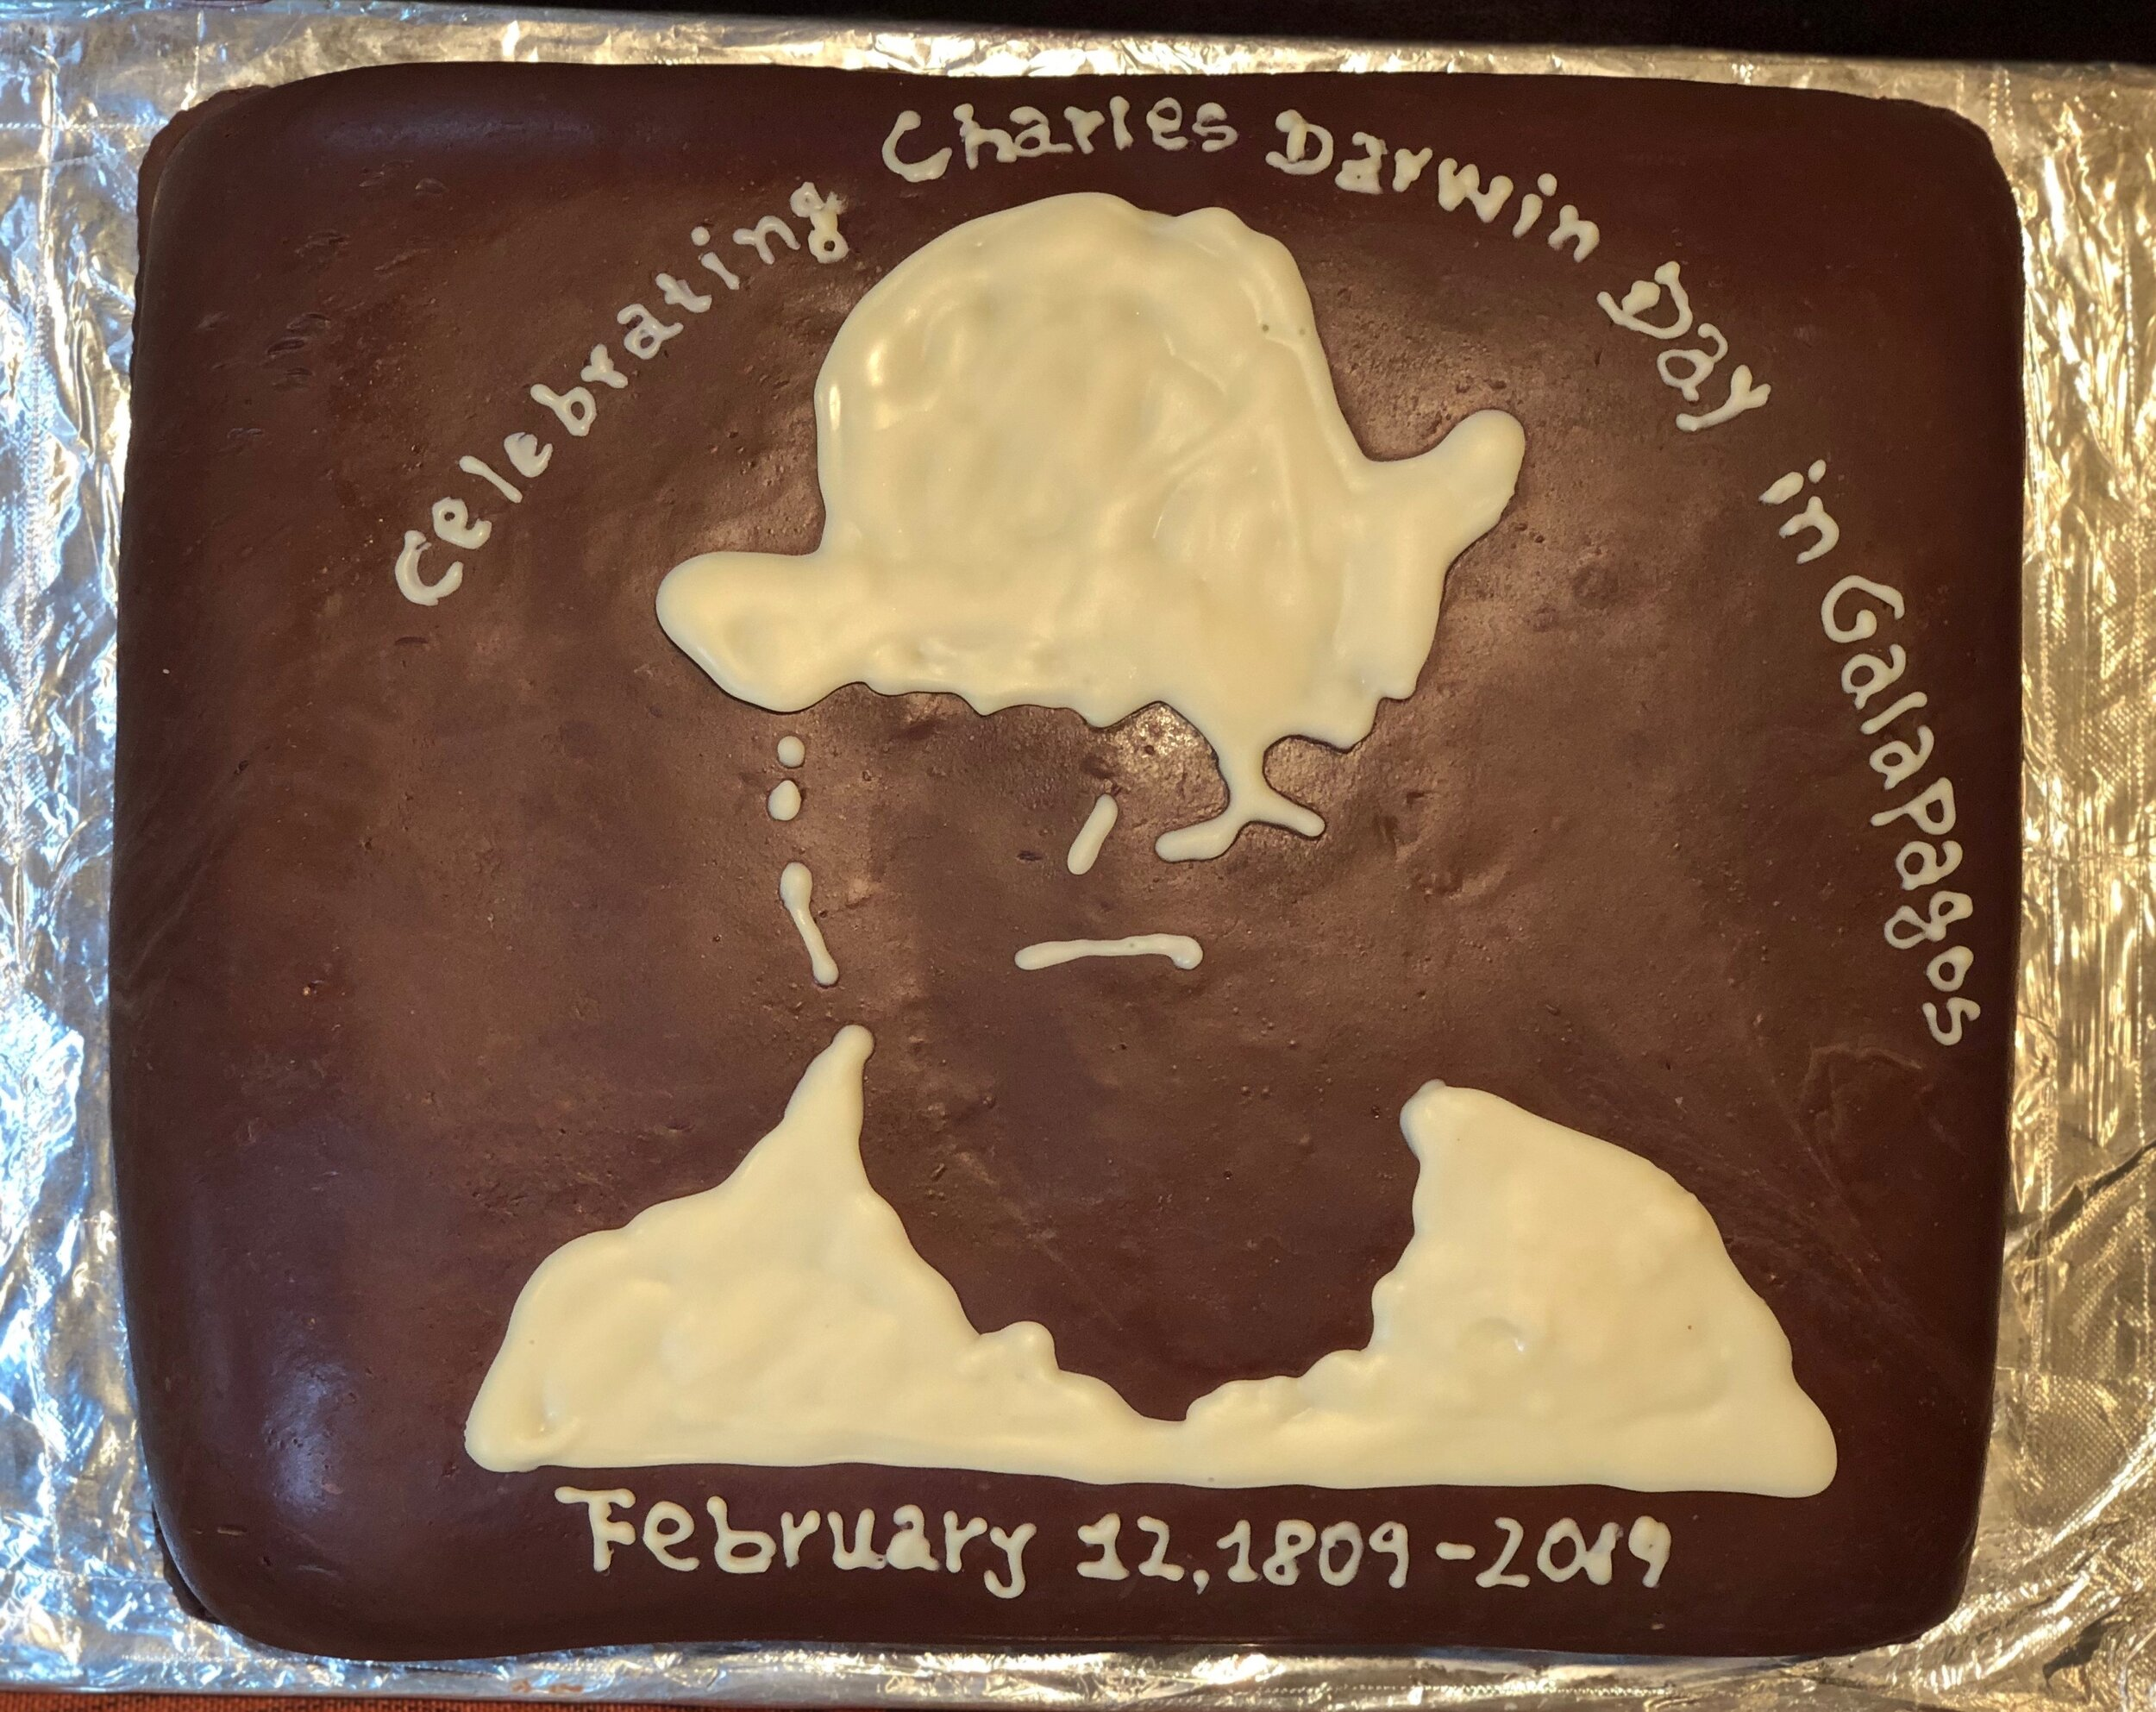 La Pinta's chef made this cake in honor of Darwin Day.